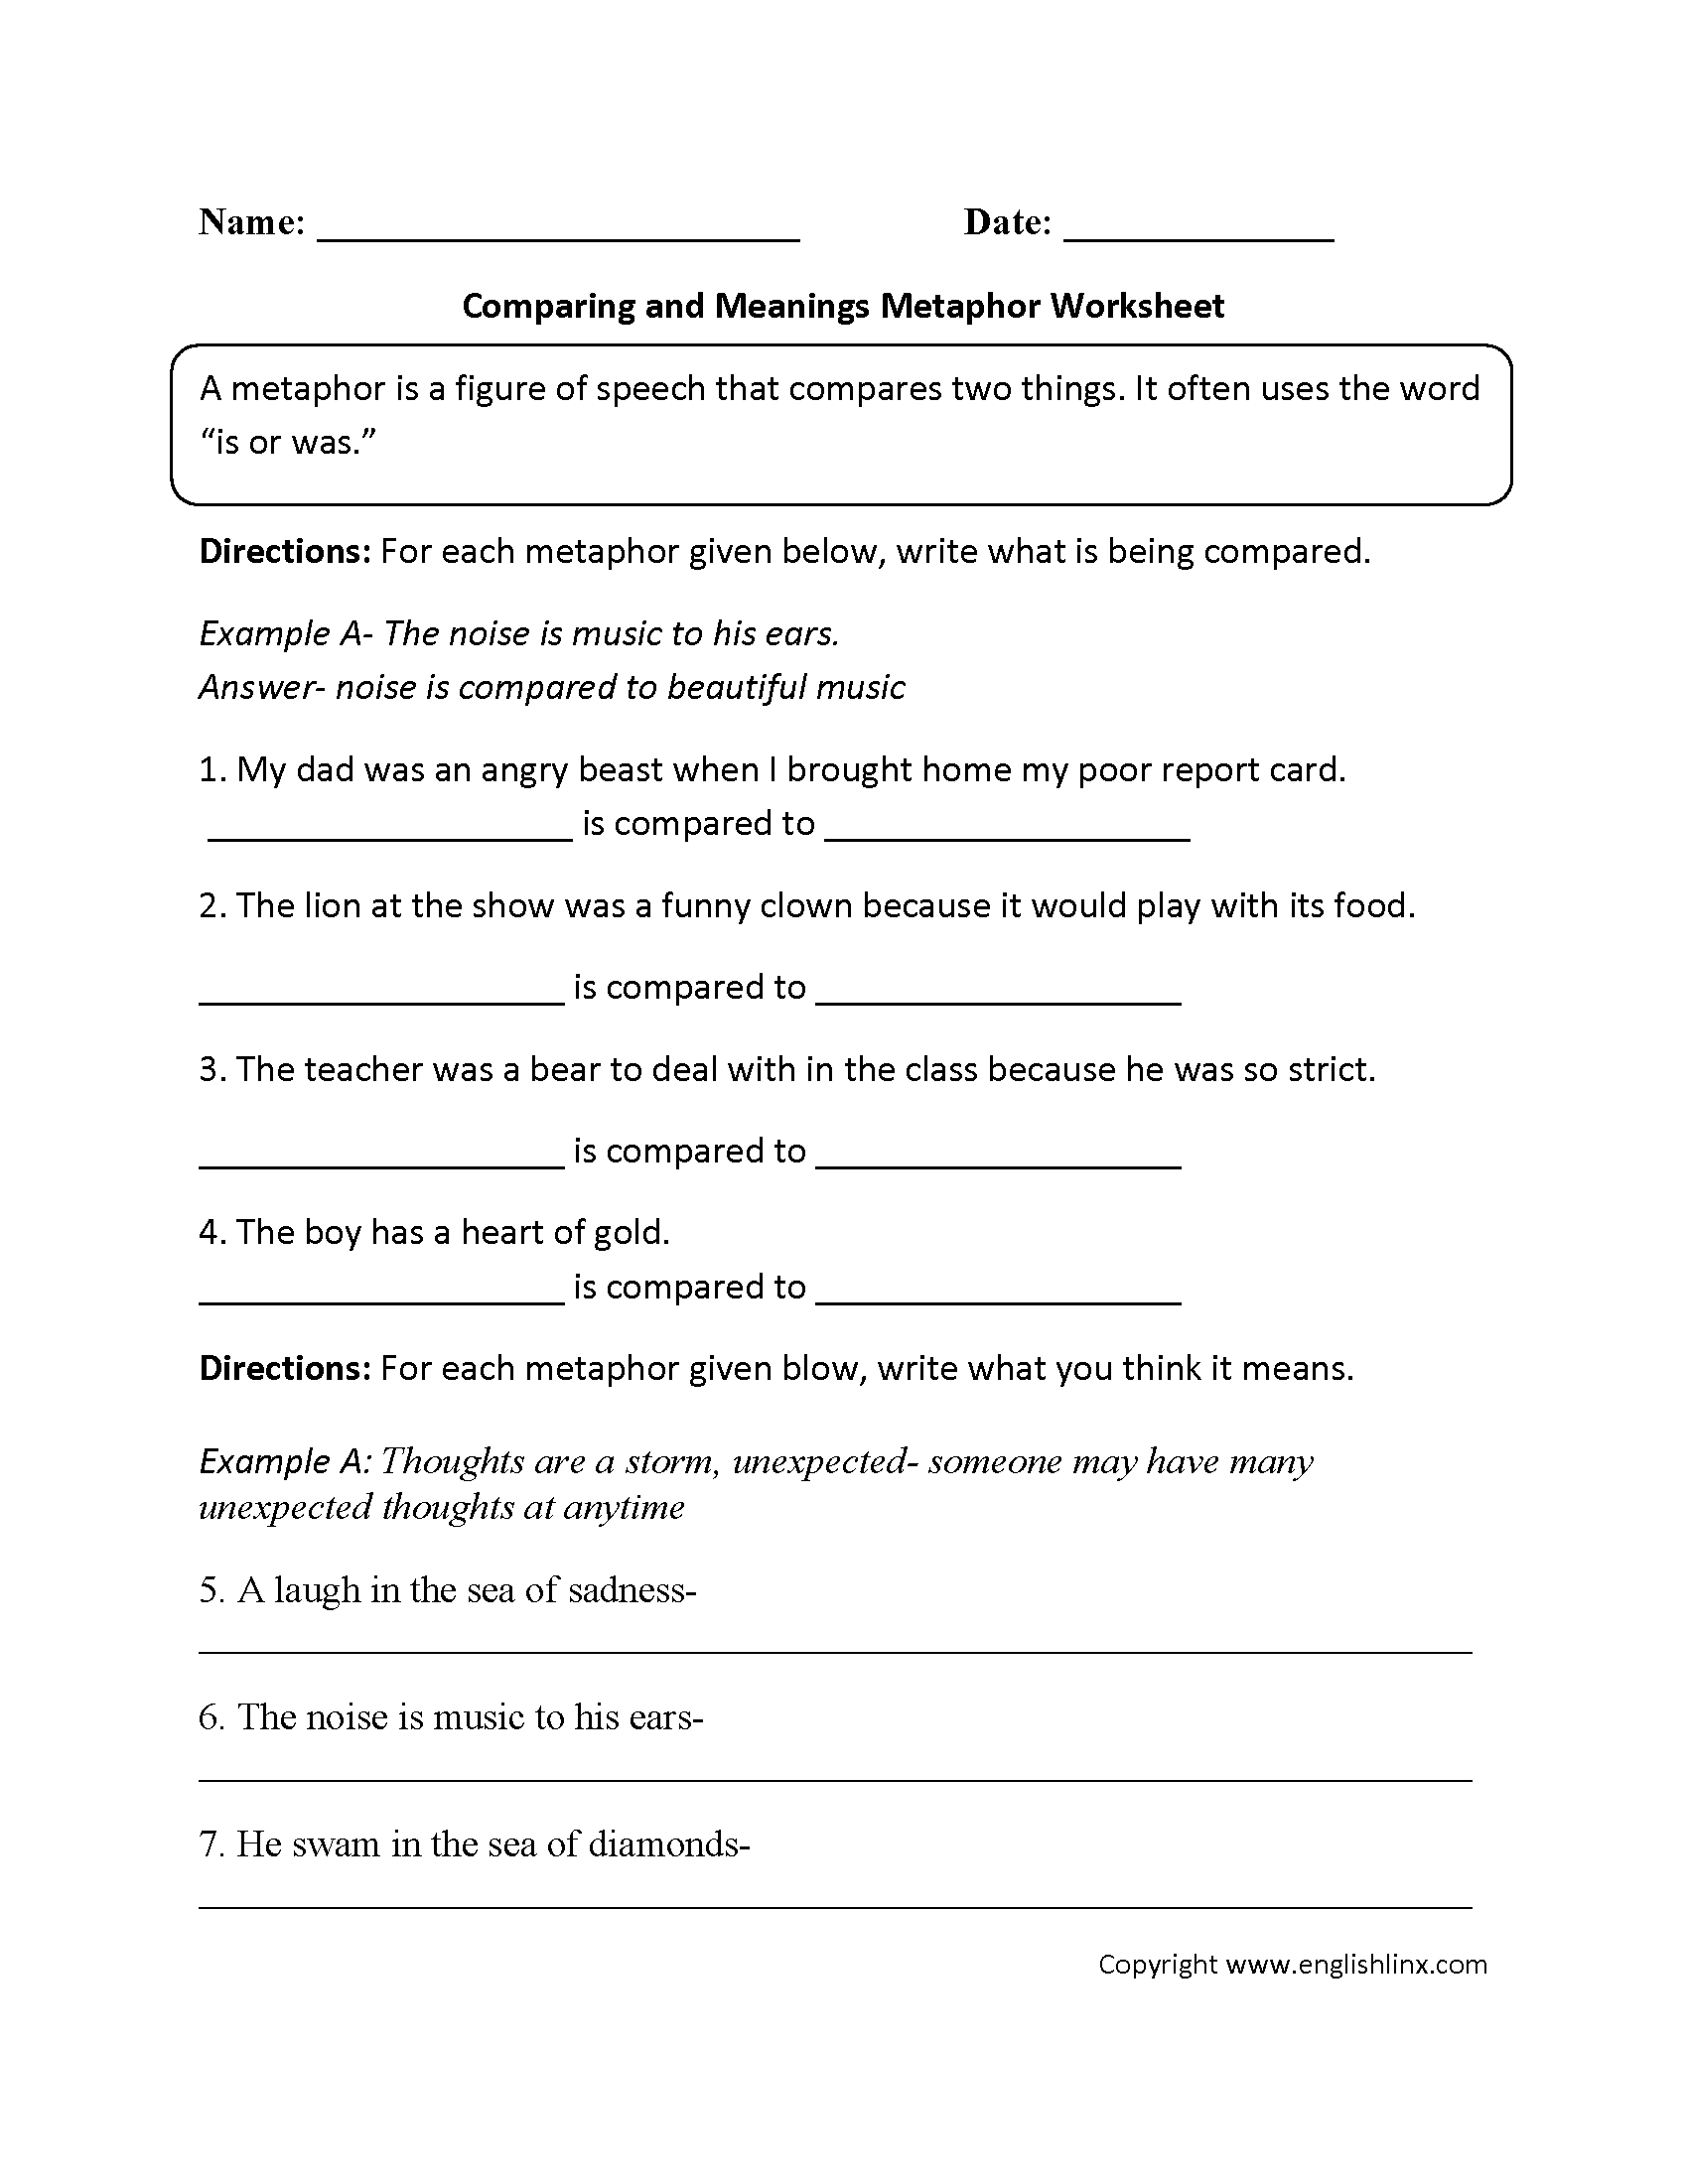 Comparing and Meanings Metaphor Worksheet | Anchor Papers ...